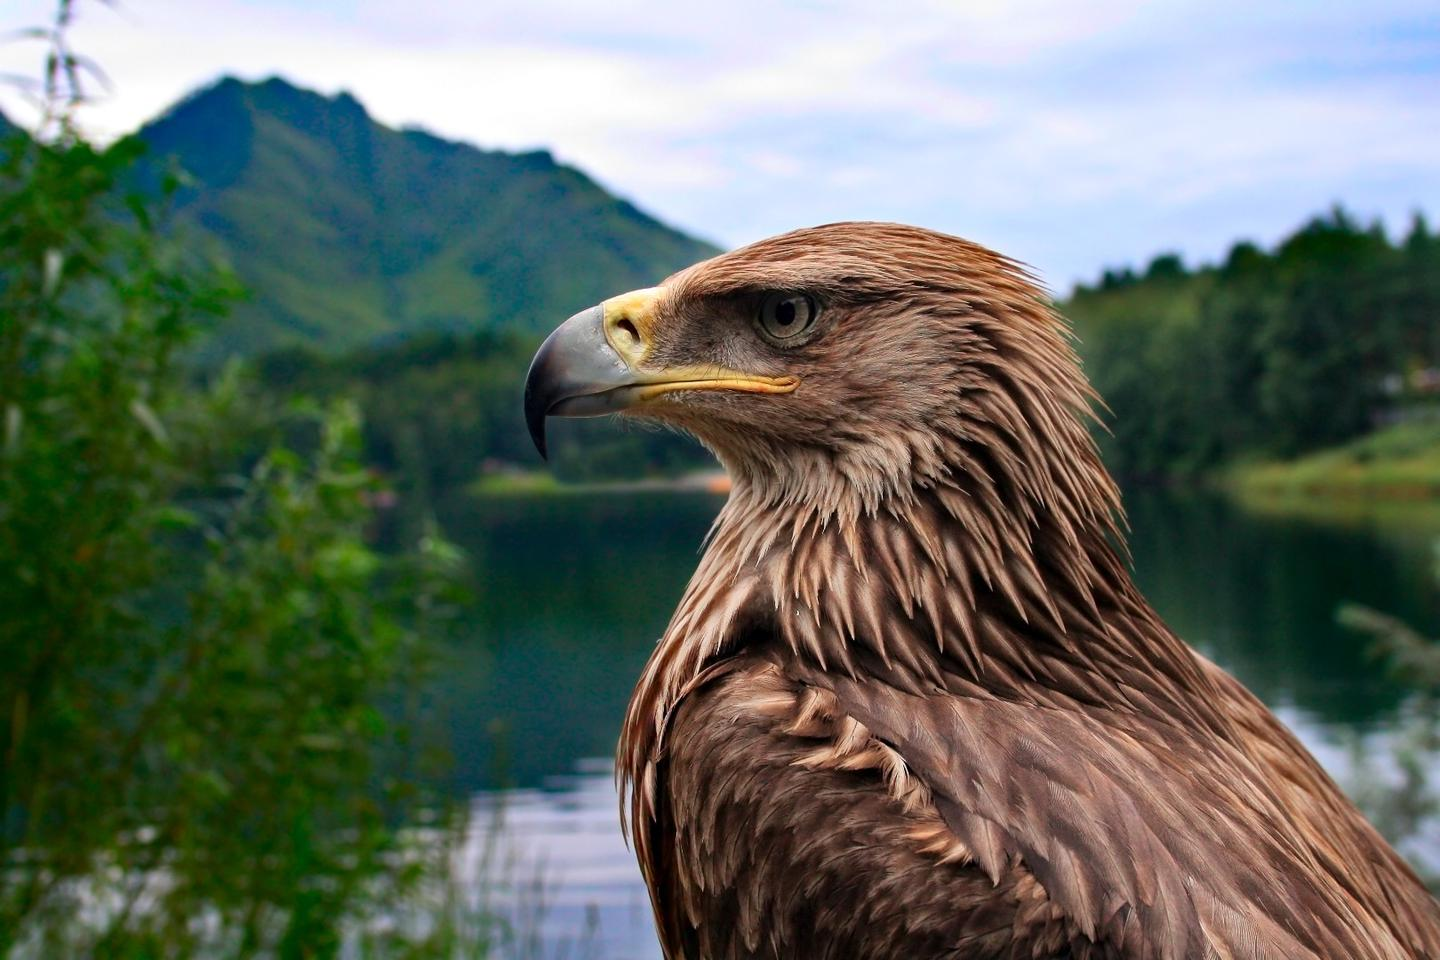 France has given golden eagles a license to kill (drones)